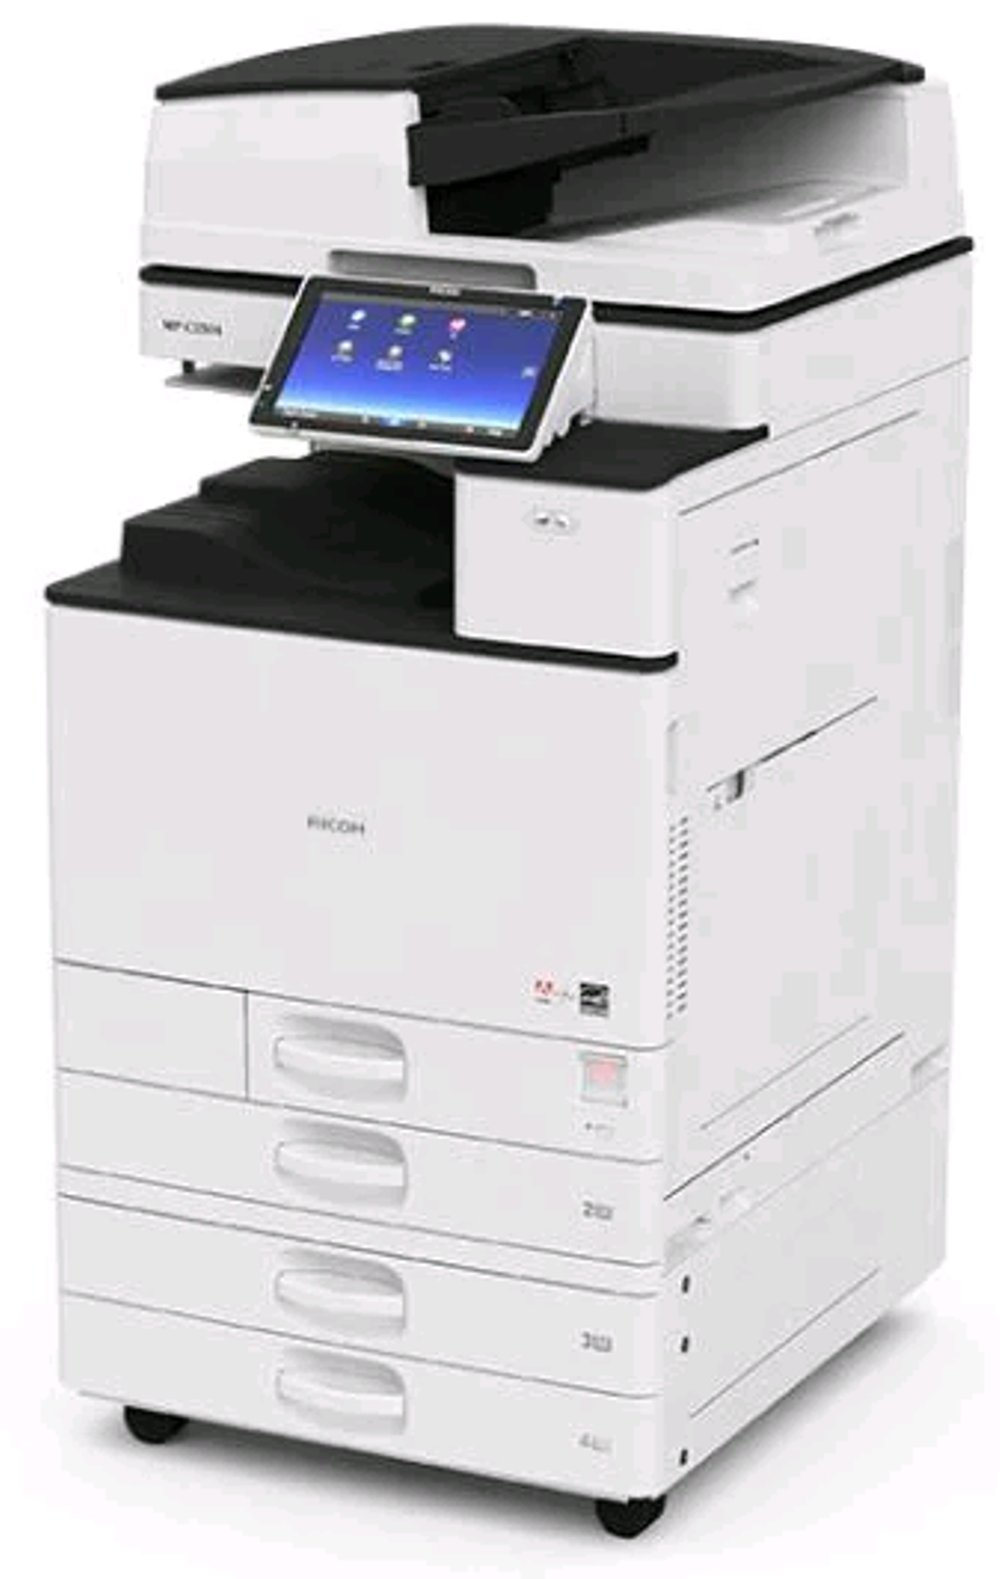 Ricoh Multi-Function Photocopier's